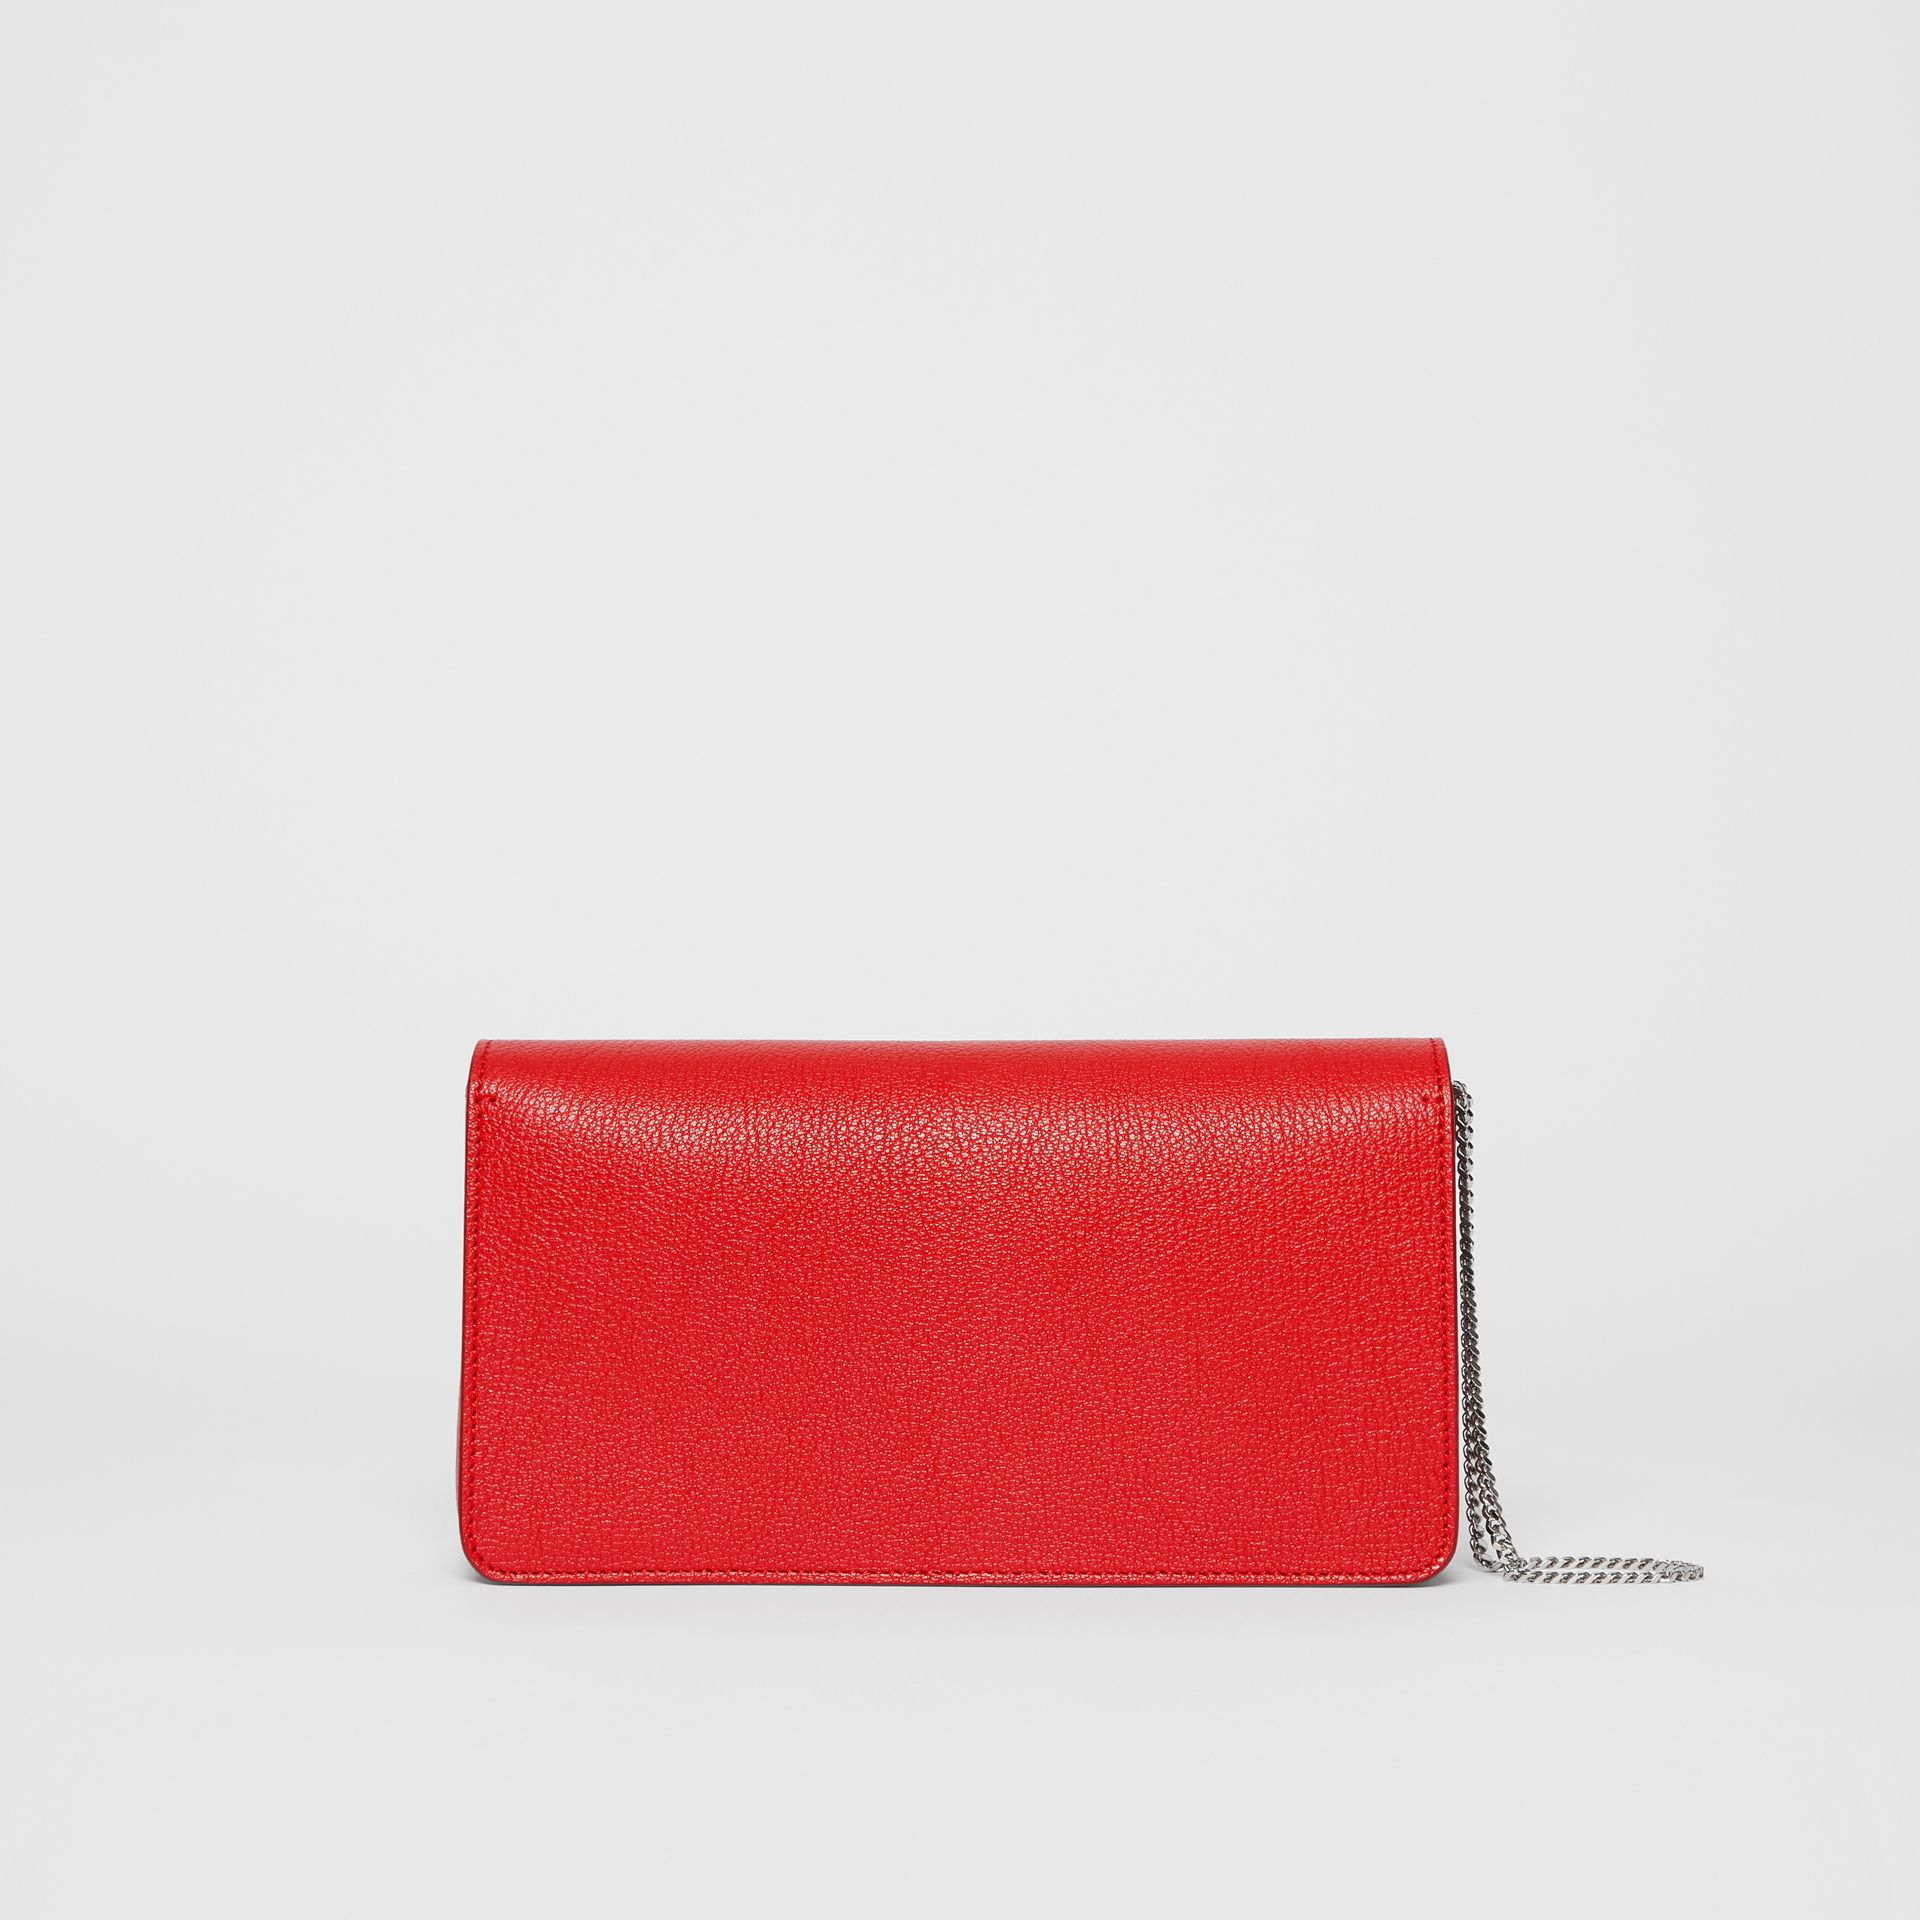 Leather Grace Clutch in Bright Military Red - Women | Burberry Hong Kong S.A.R - gallery image 7